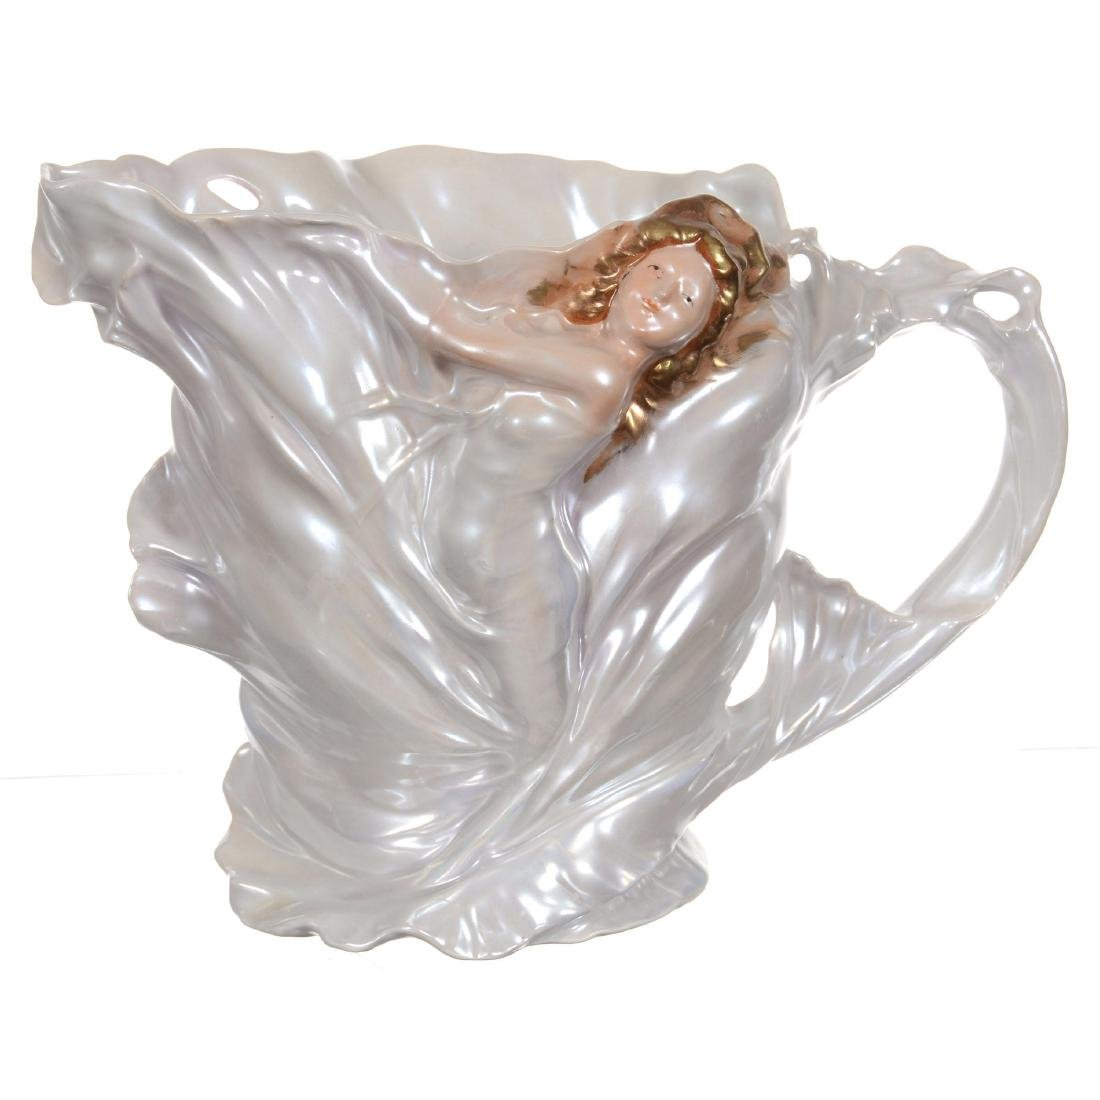 Royal Bayreuth Art Nouveau Water Pitcher